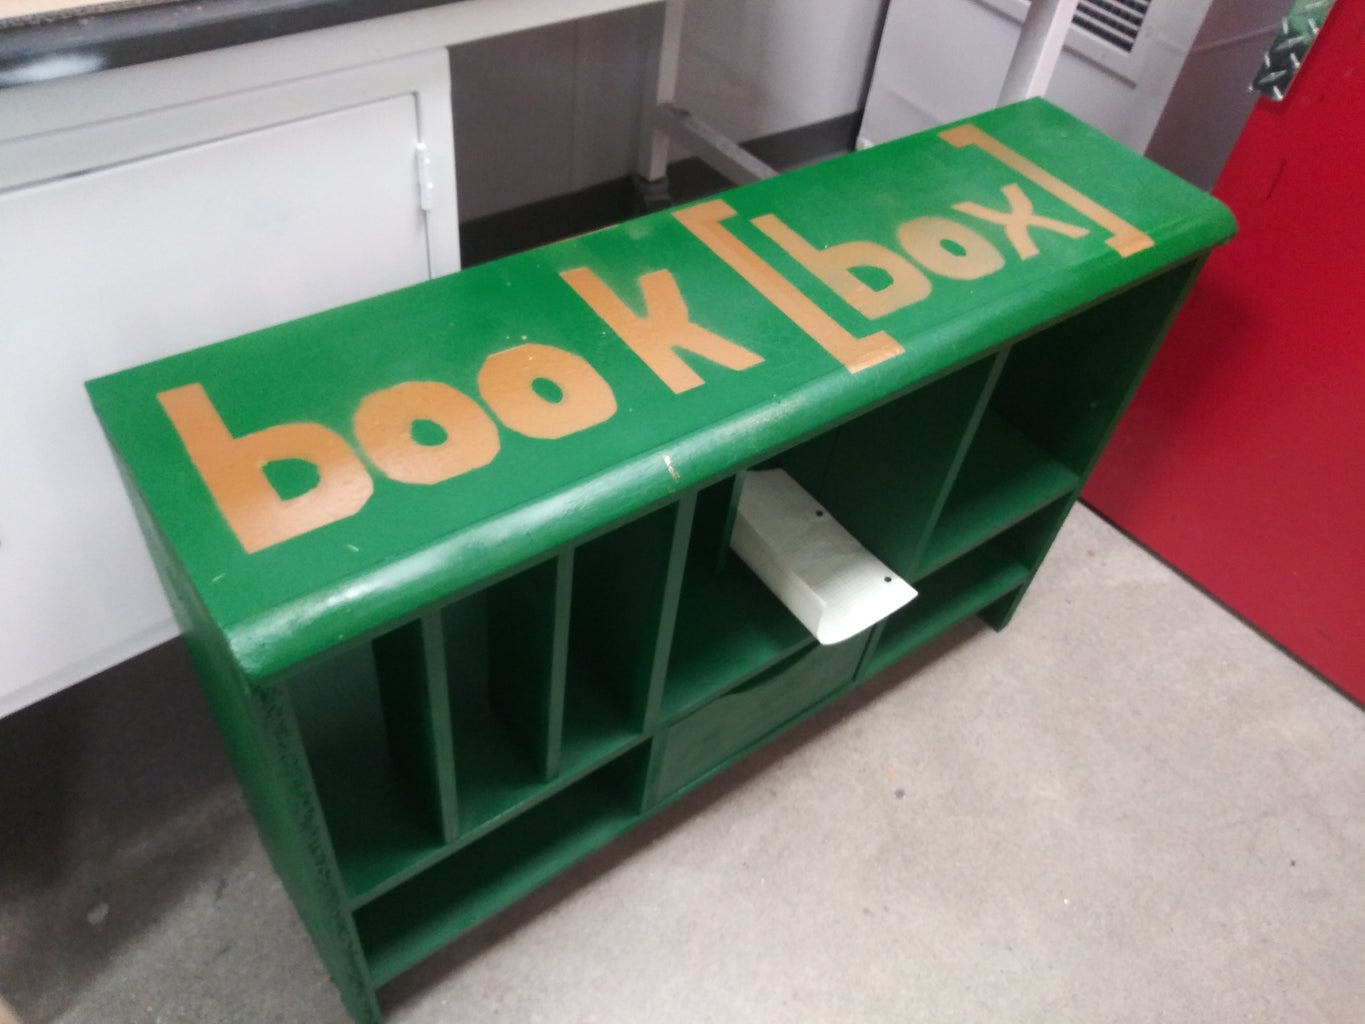 Spray Painting an Old Bookshelf With Stencils